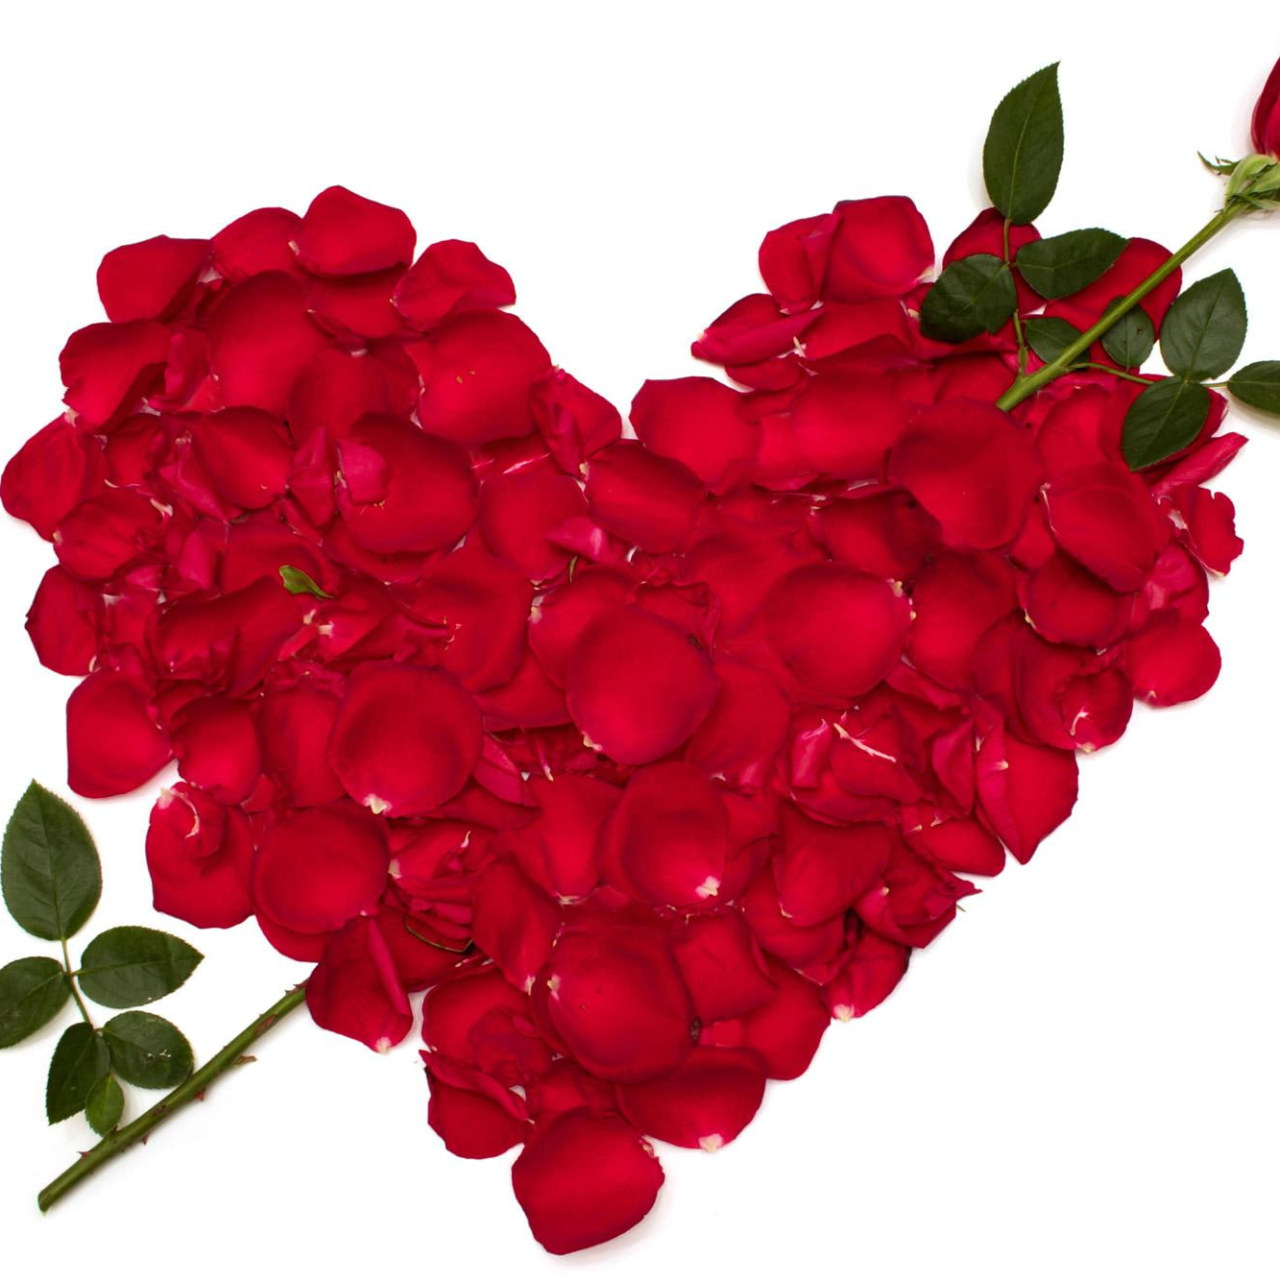 roses heart red petals flowers love valentines day valentine 2021 wallpaper